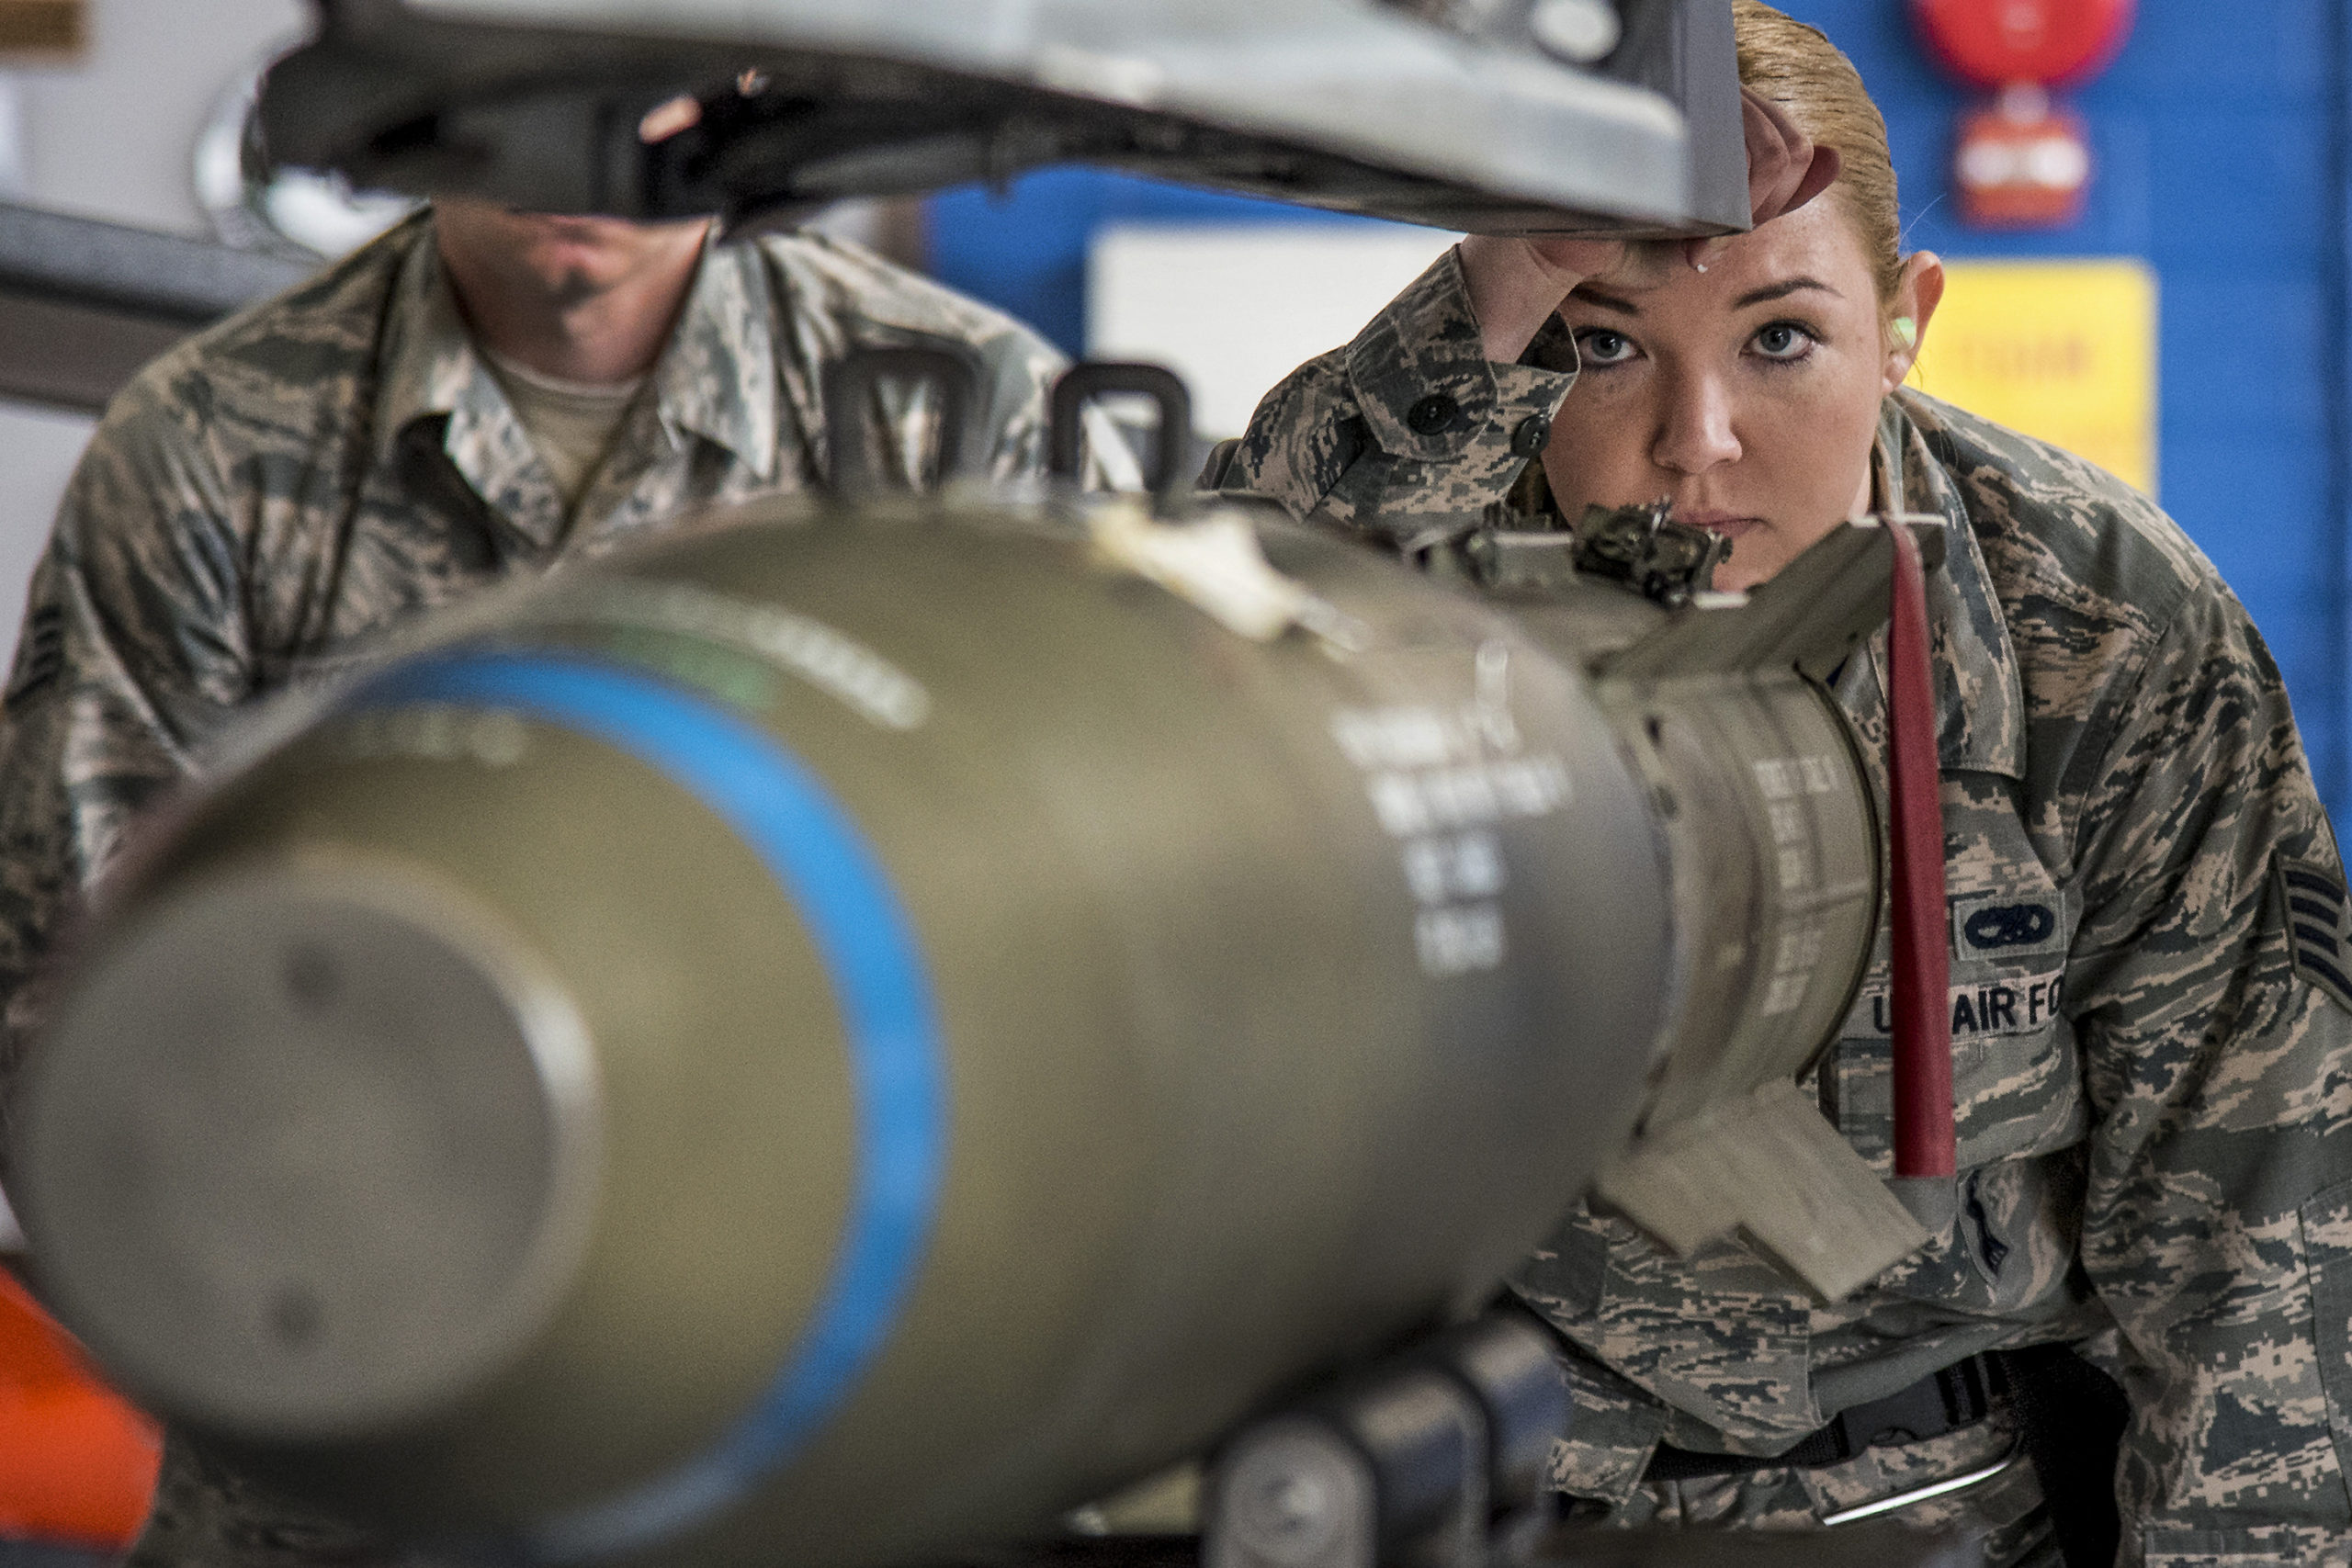 Military lady inspecting bomb